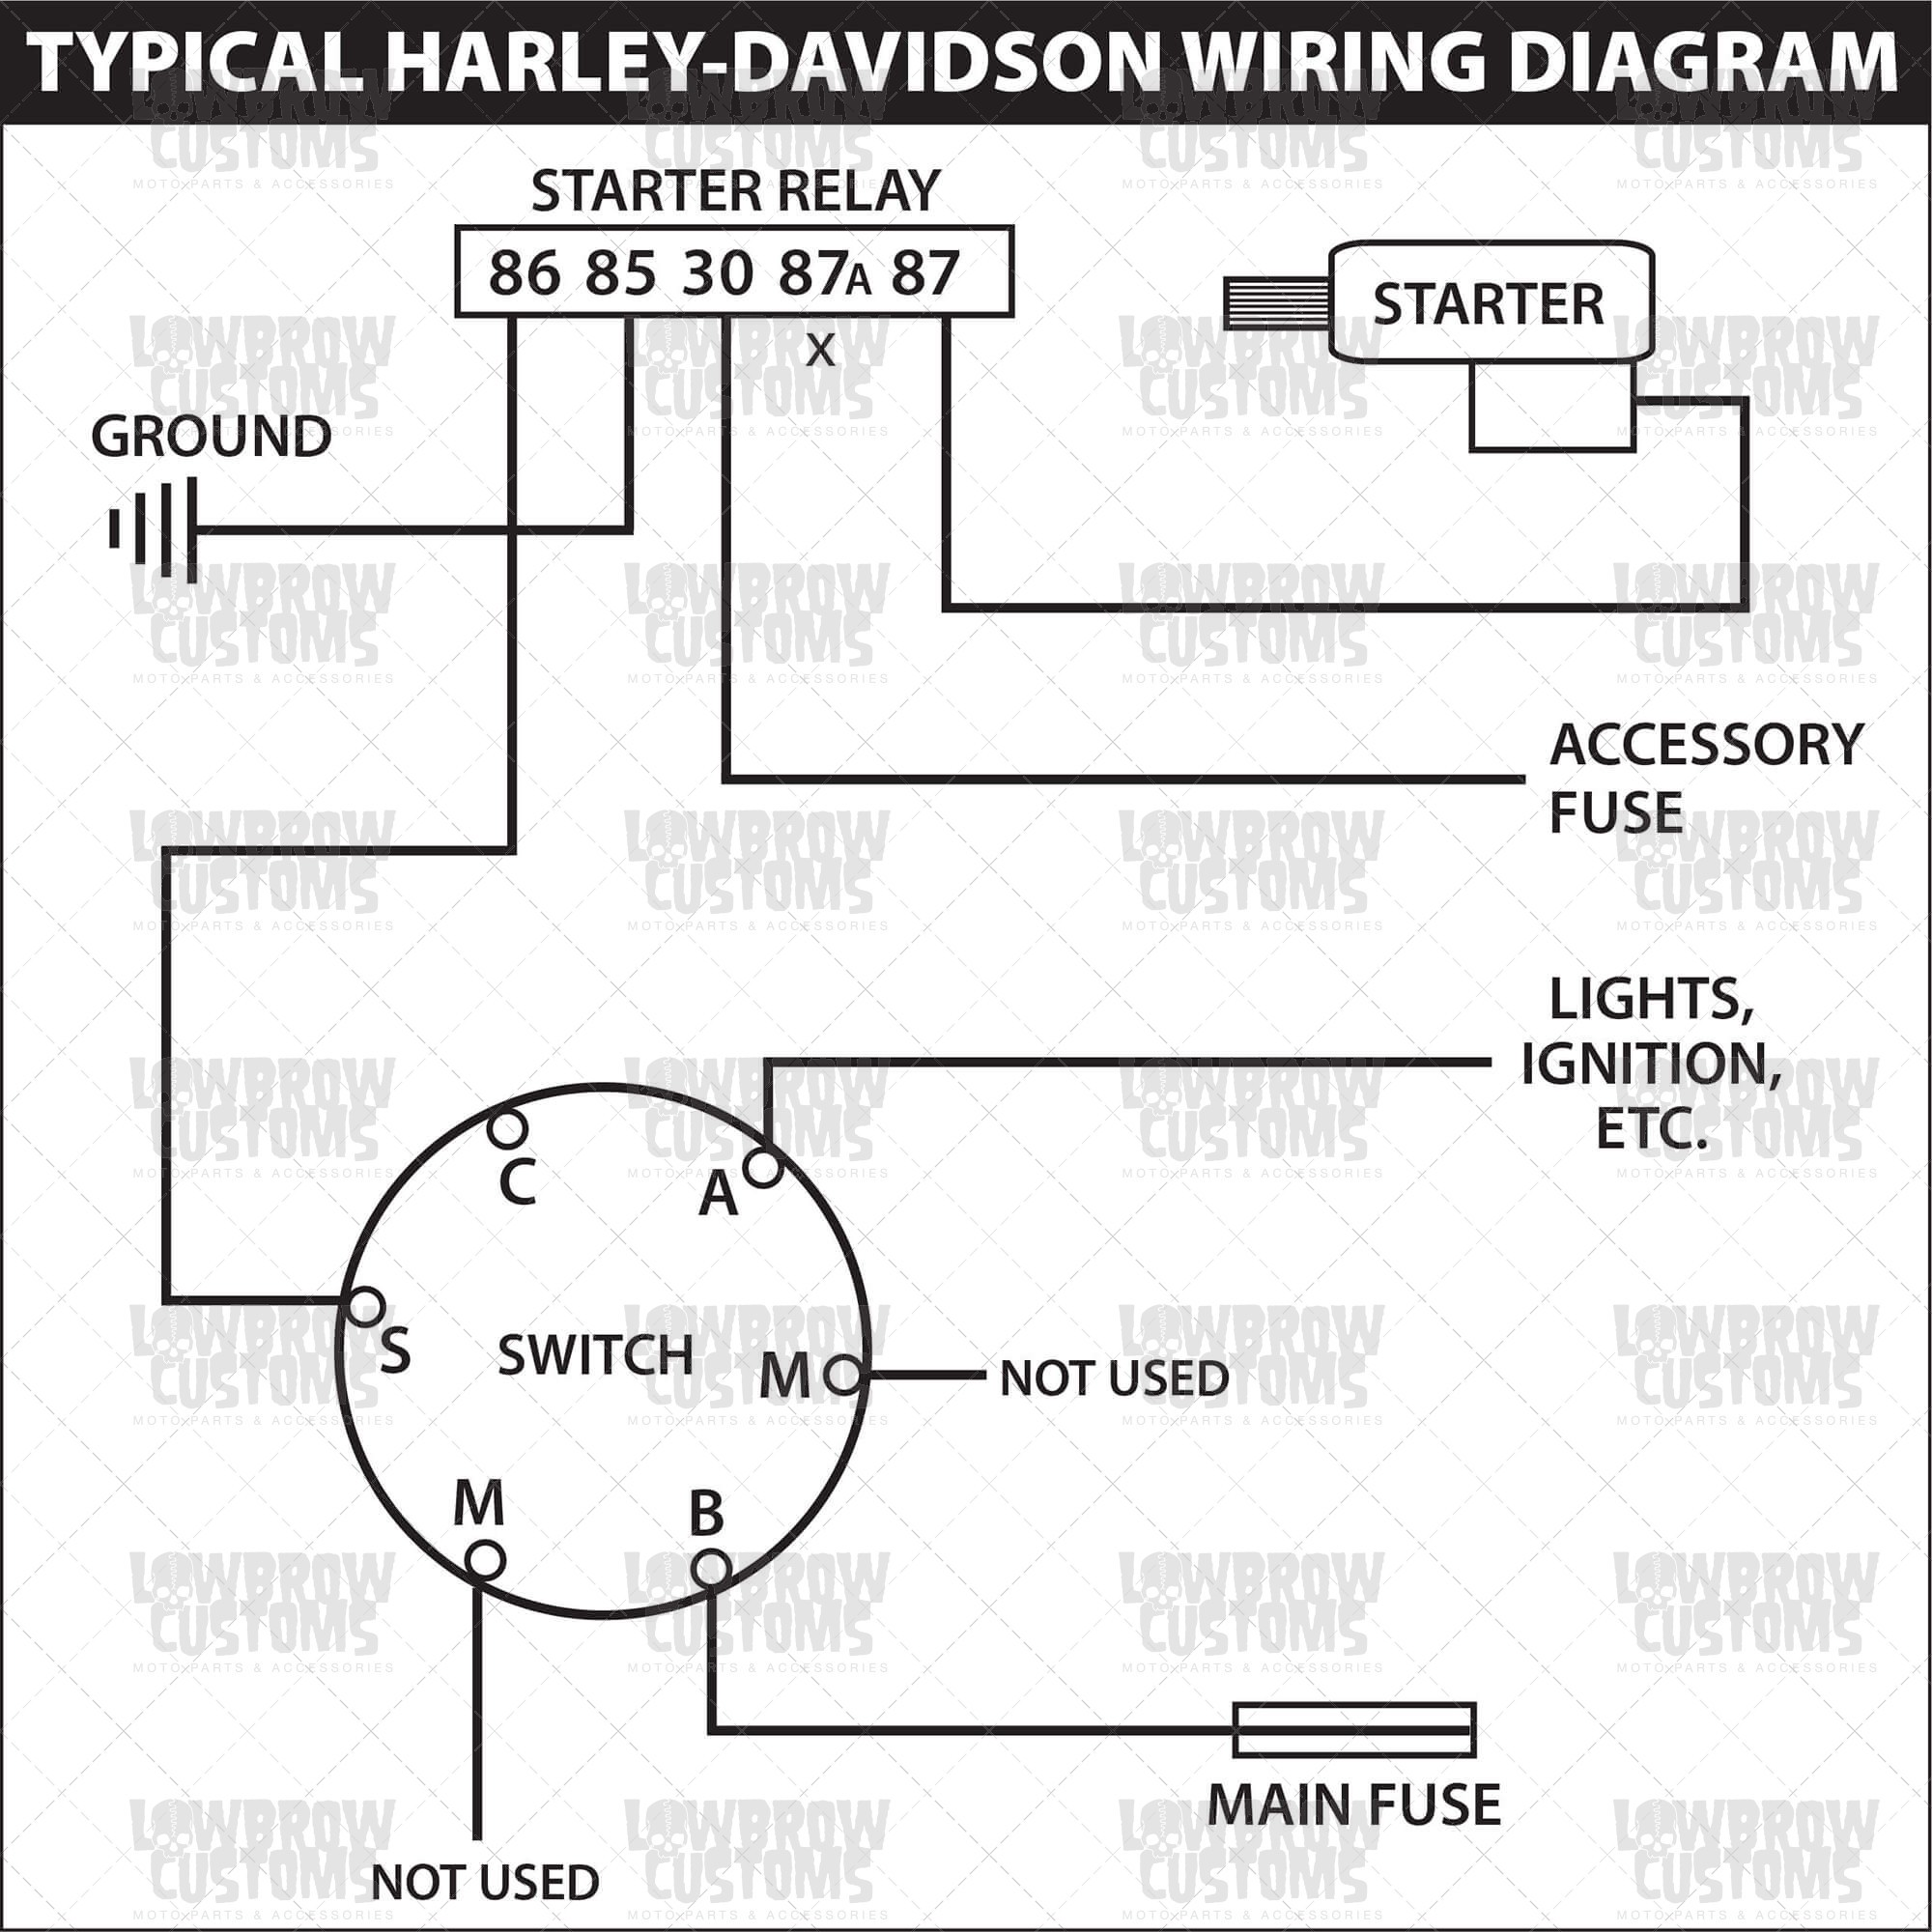 Universal Ignition Switch Wiring Diagram 1955 Chevy Fuel Tank 55 Related Post